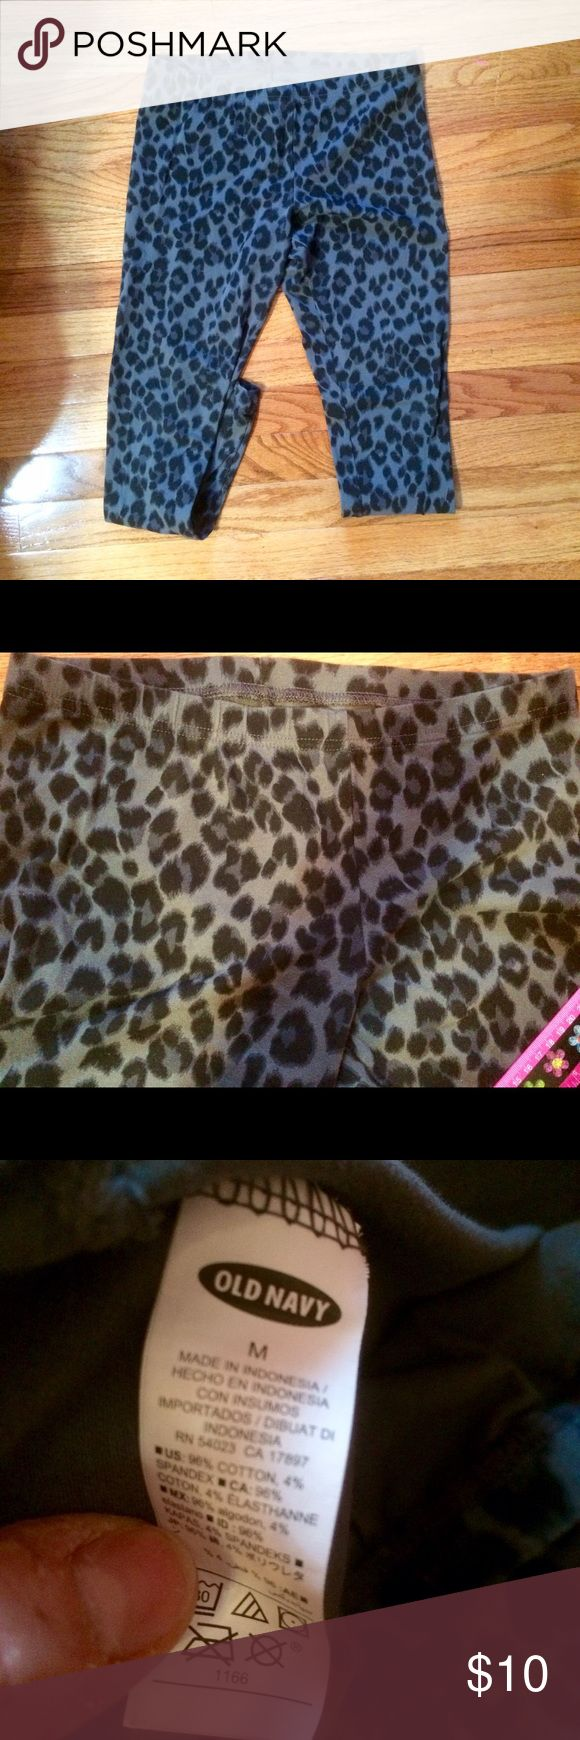 "Old Navy Leopard Leggings Black and Grey leggings from old navy. Practically new in Excellent condition! No signs of wear. Inseam is 60"" and the waist is 34"" Old Navy Pants Leggings"